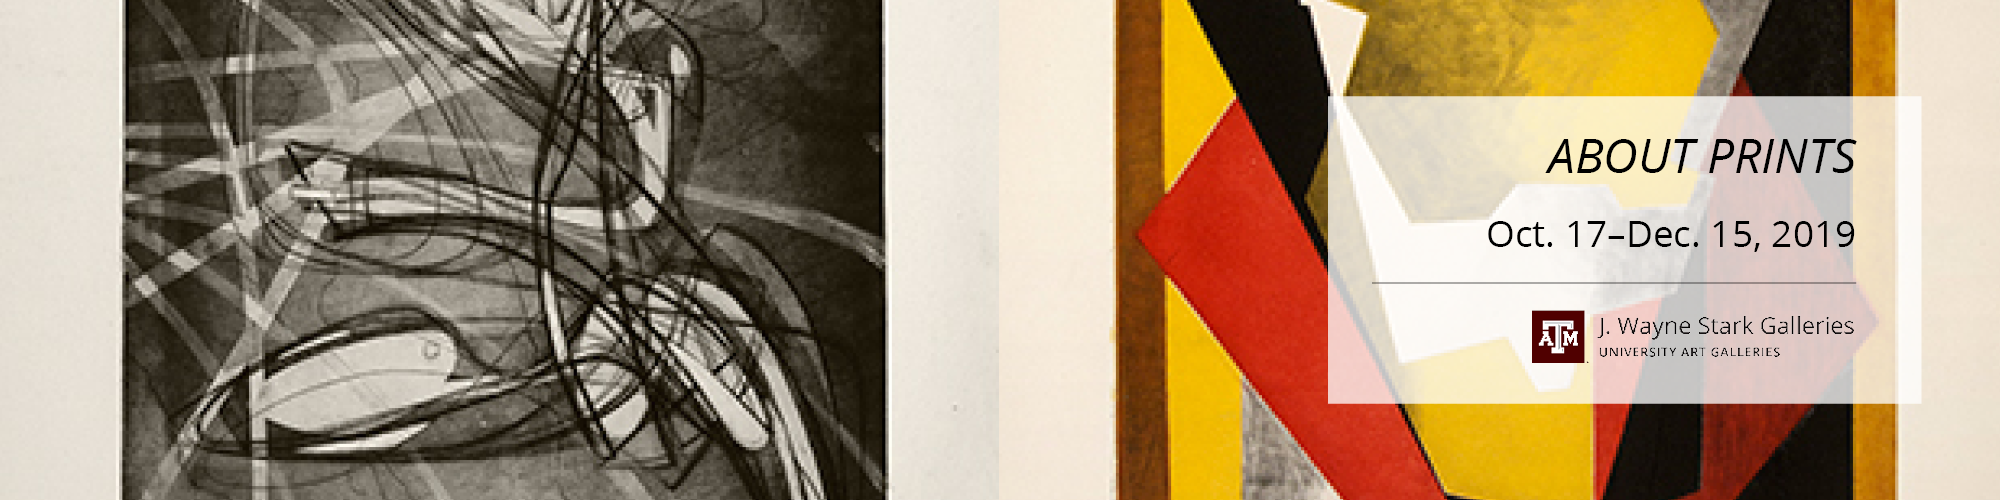 Two abstract works side by side. One is black and white, the other is red, yellow, and black geometric shapes.